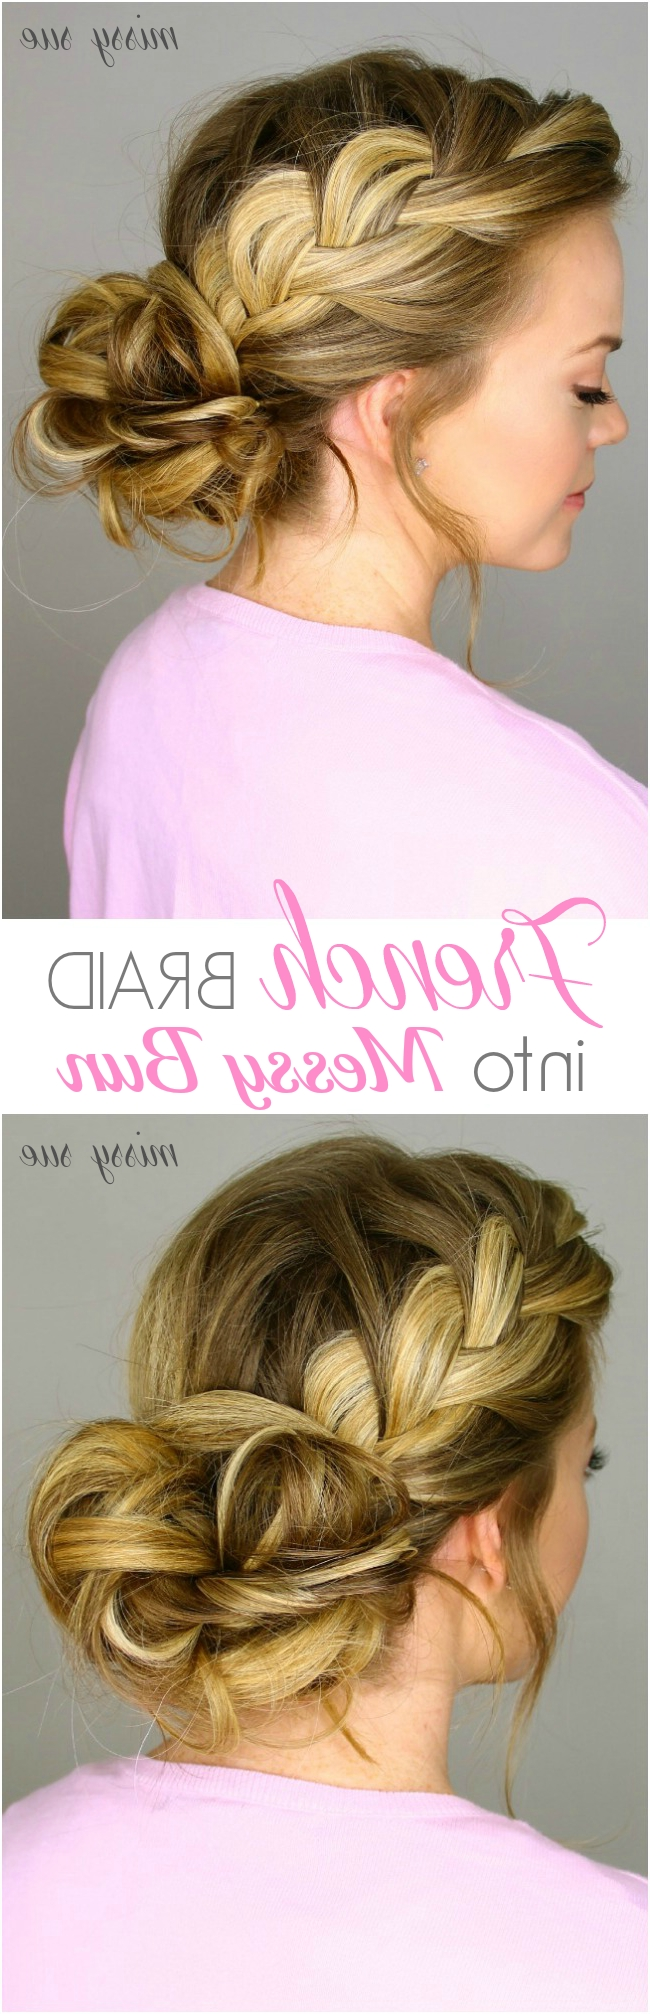 French Braid Into Messy Bun Intended For Well Liked French Braids Into Braided Buns (View 10 of 15)